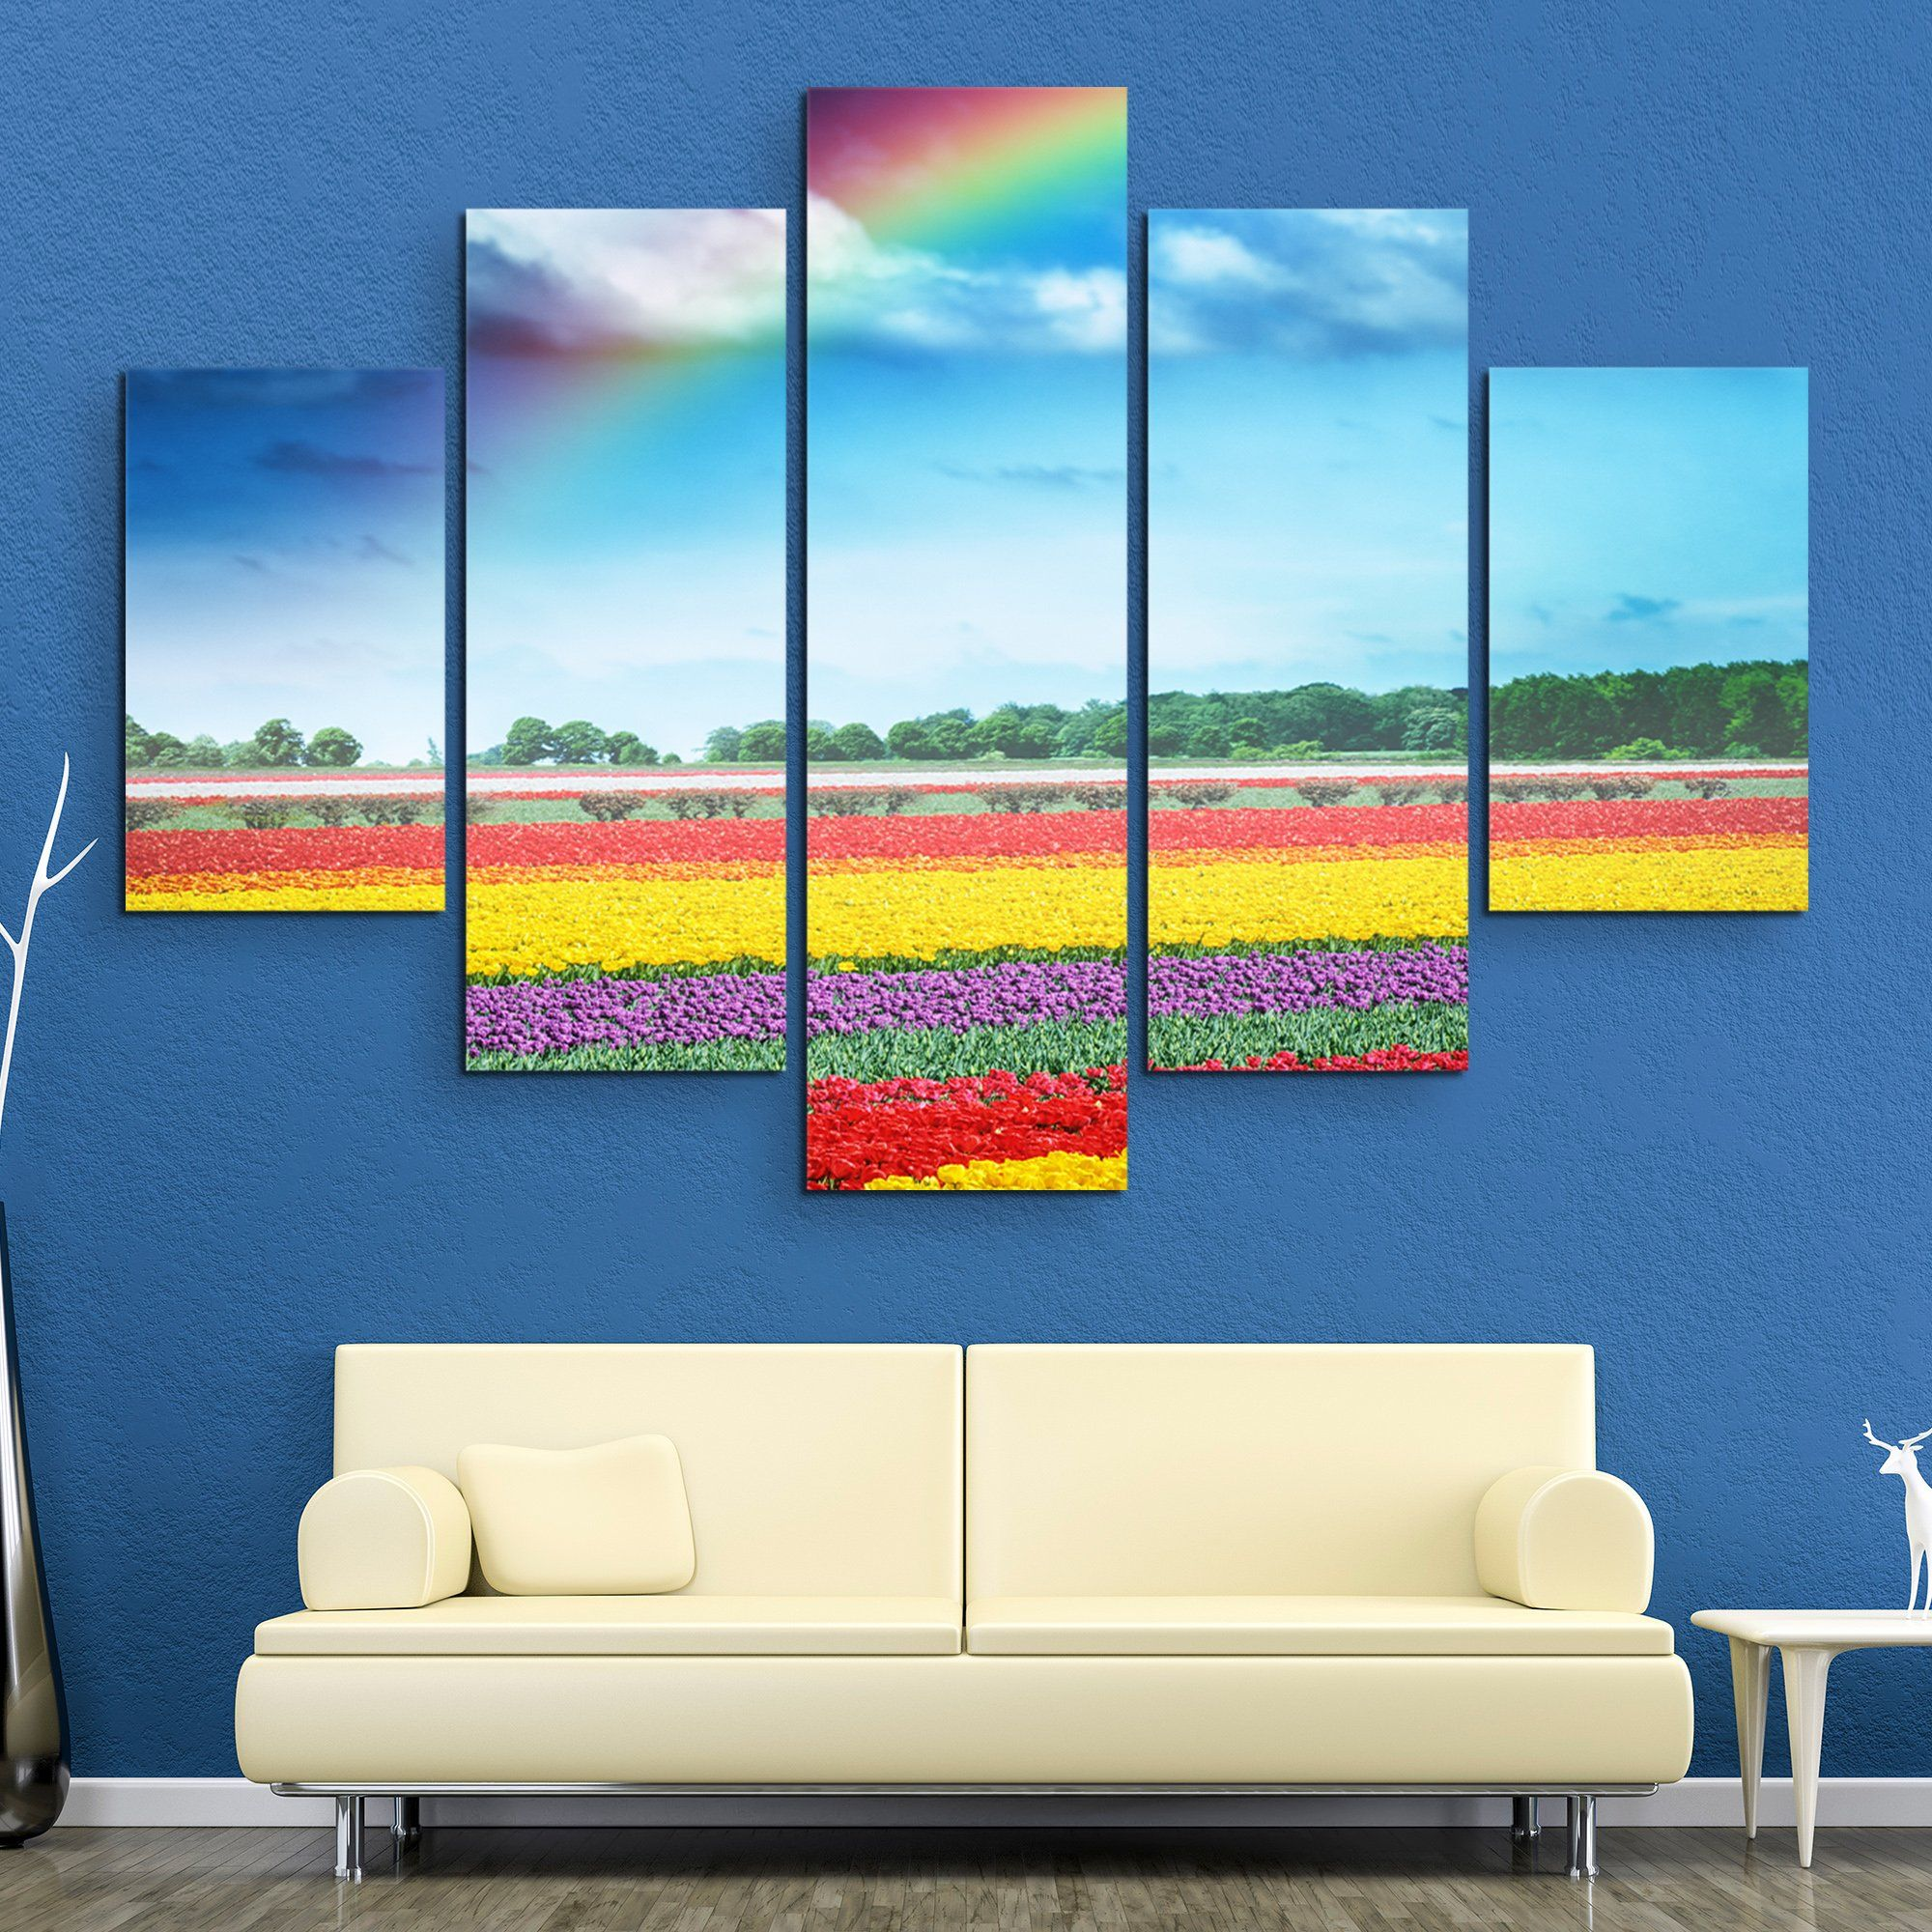 5 piece Rainbow Over Tulips wall art